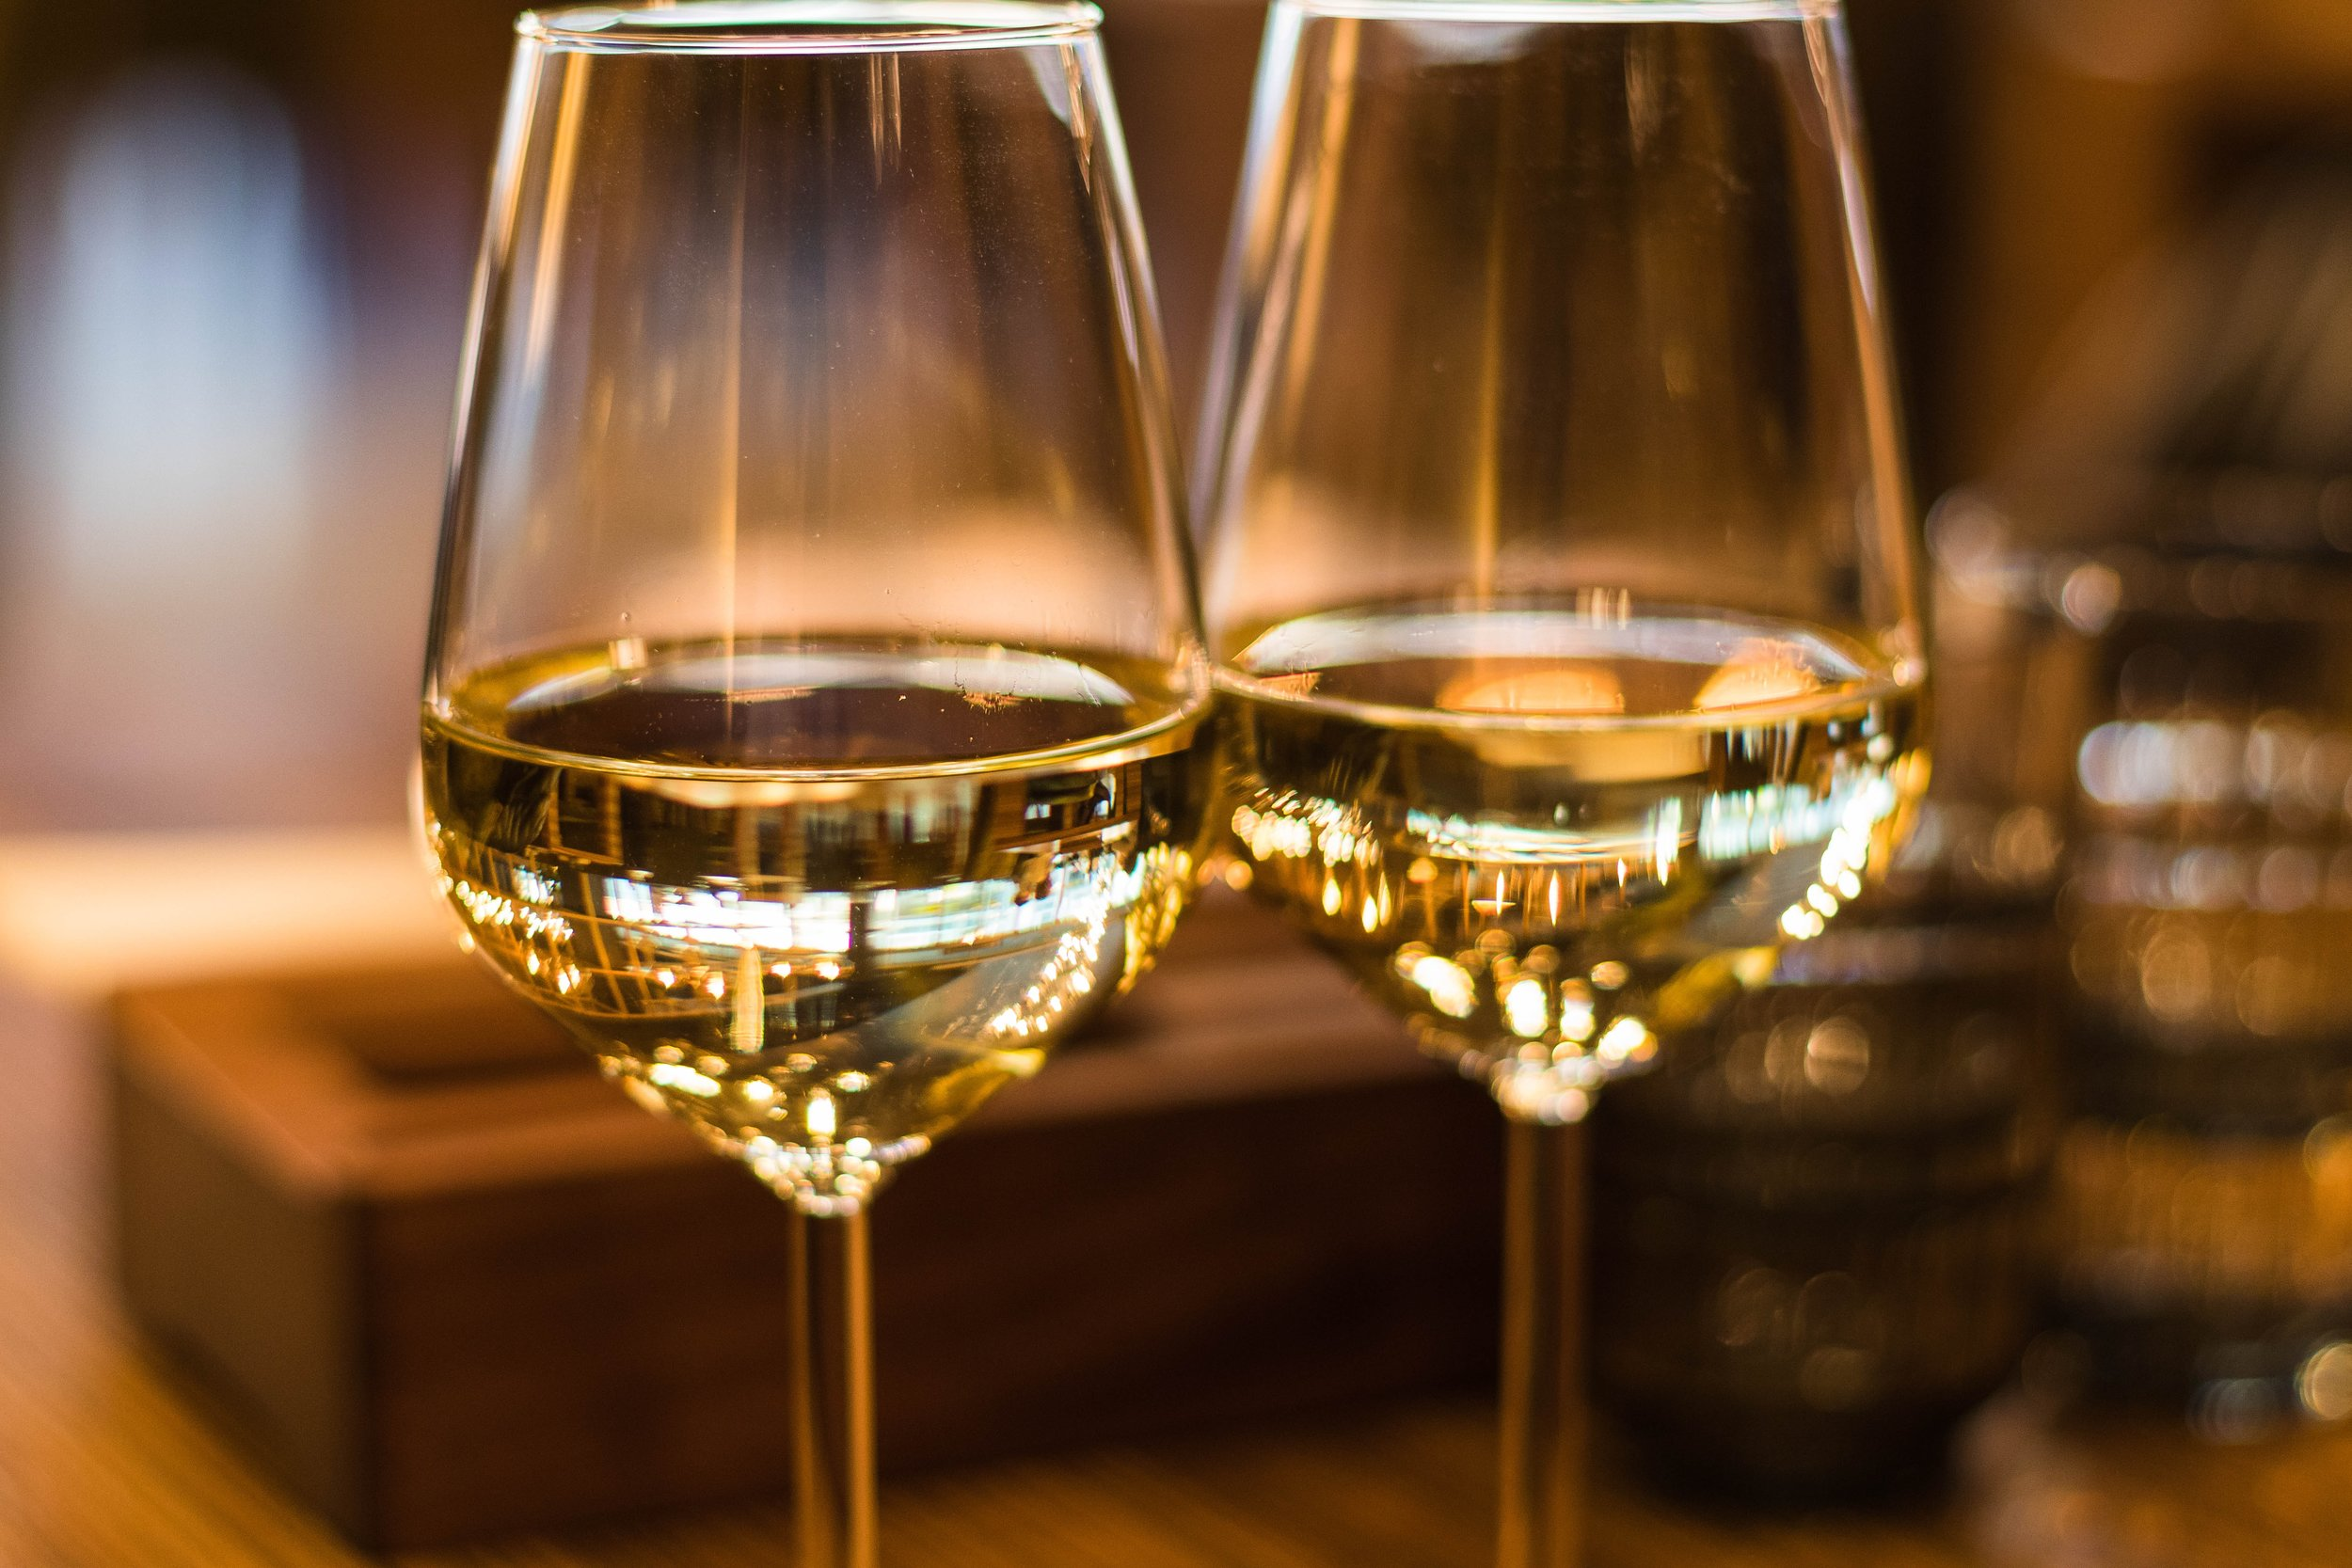 White wine. Photo source Valeria Boltneva on Pexels